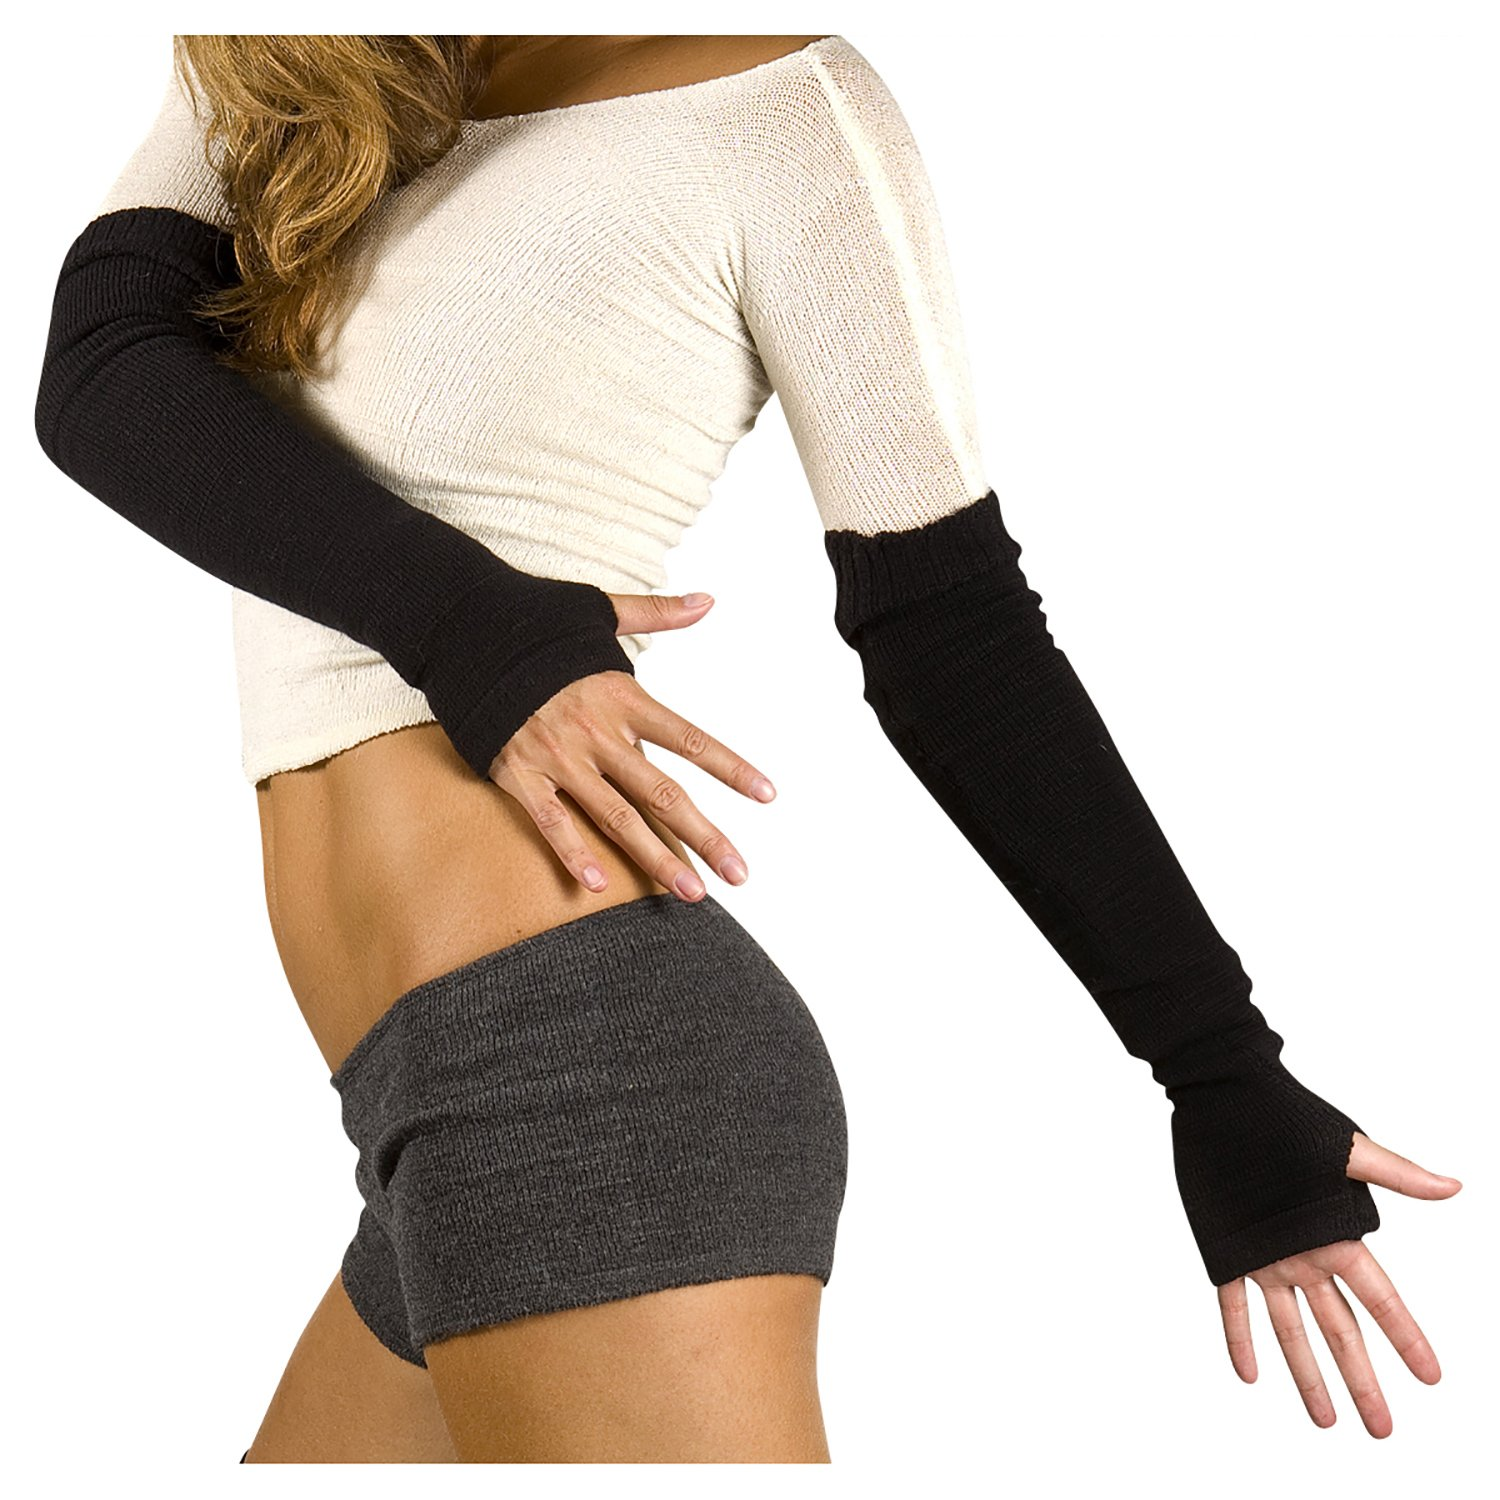 Black Arm Warmers by KD dance Warm Cozy Stretch Knit Thumb Hole Made In USA